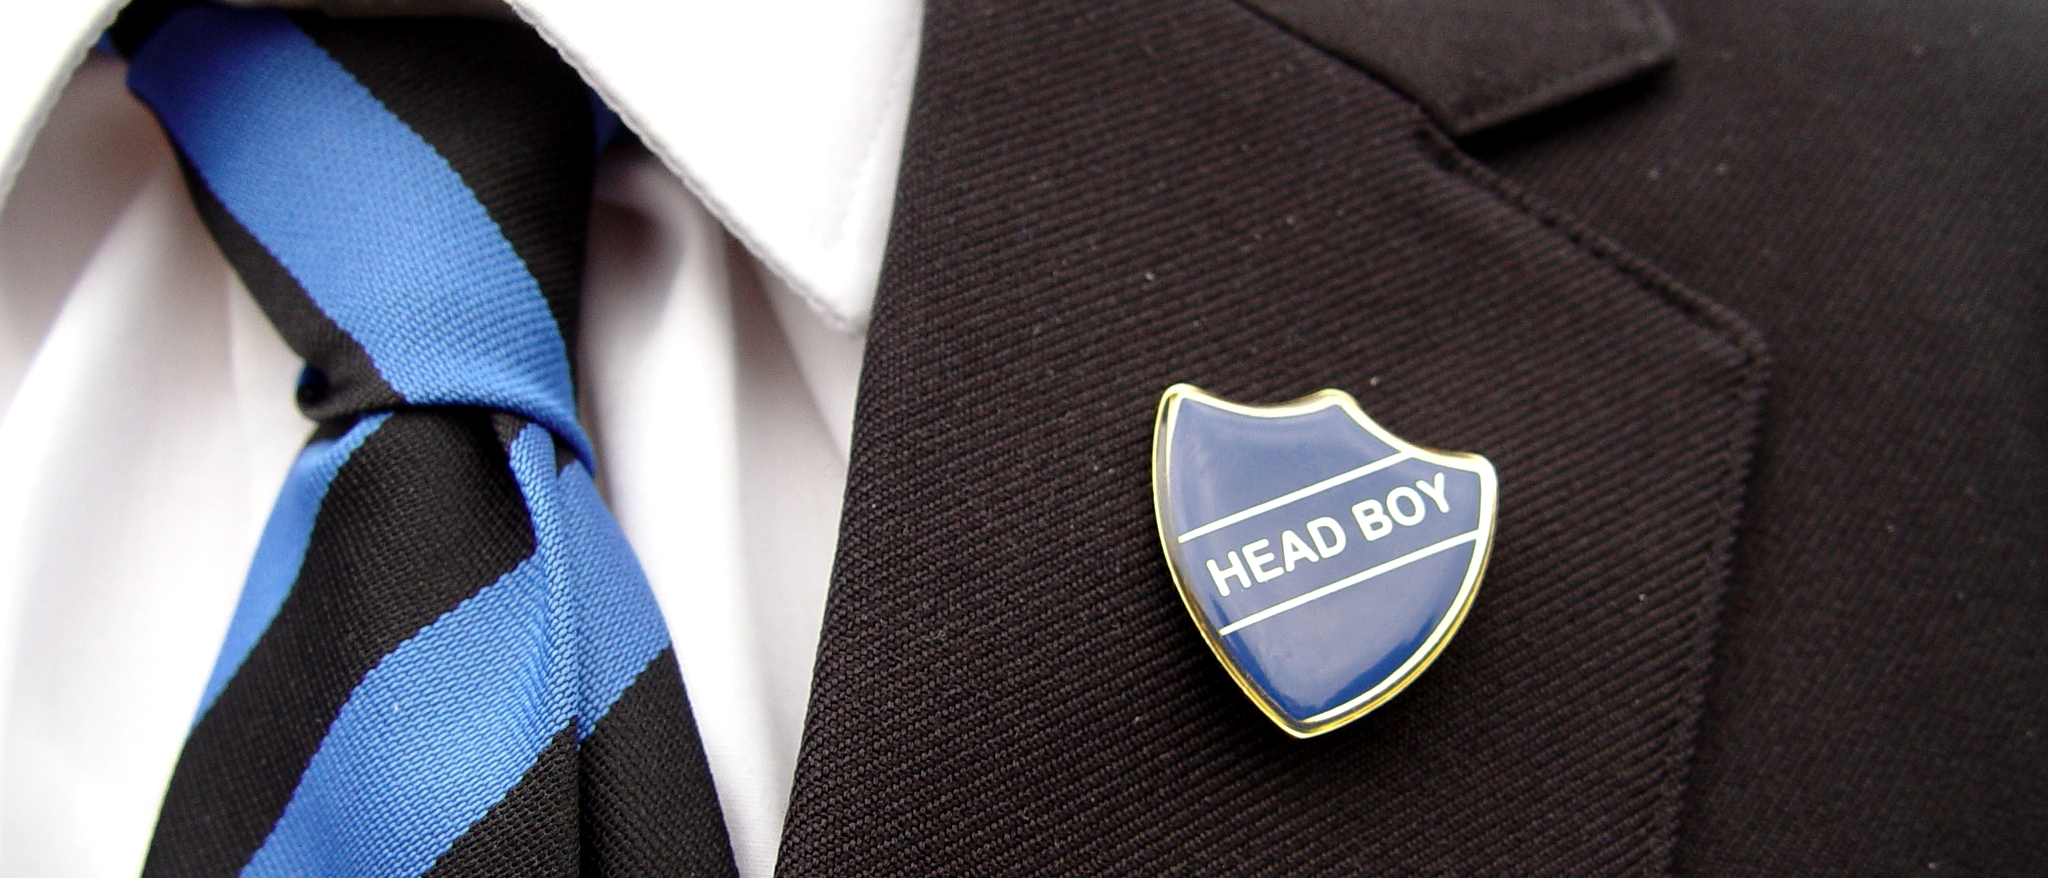 New Head Boy and Girl